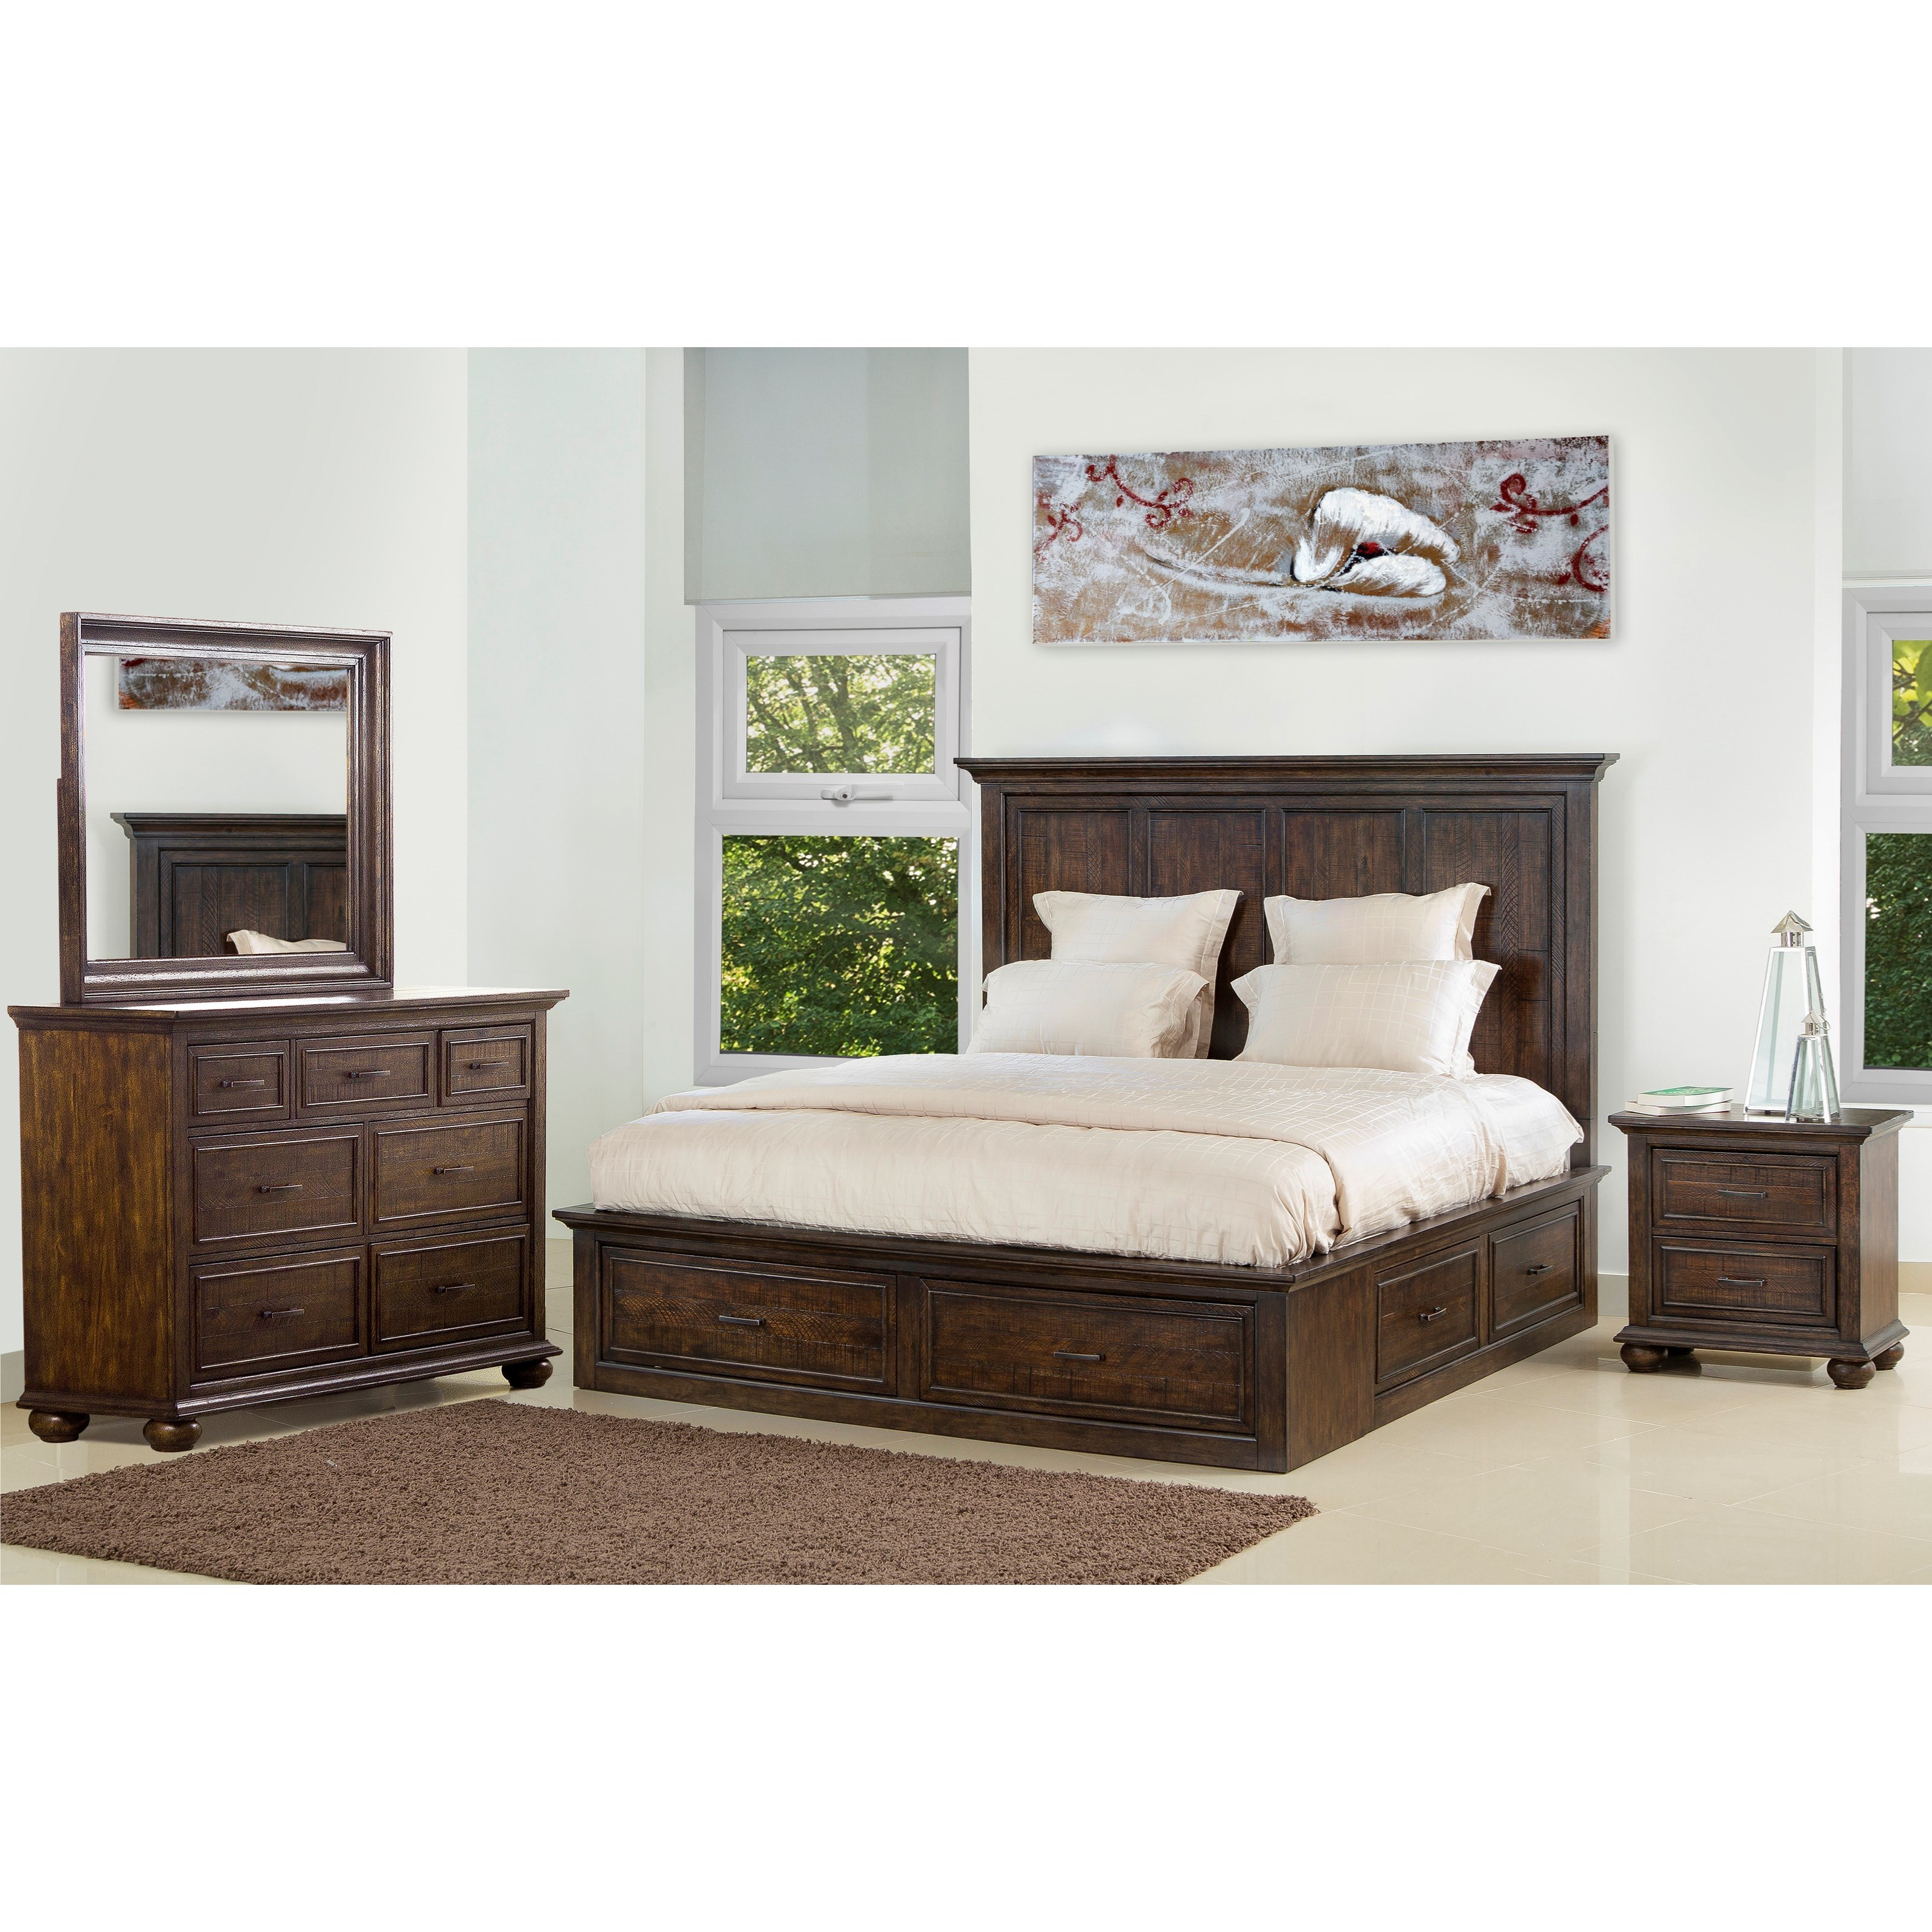 Samuel Lawrence Chatham Park Queen Bedroom Group 1 | Wayside ...